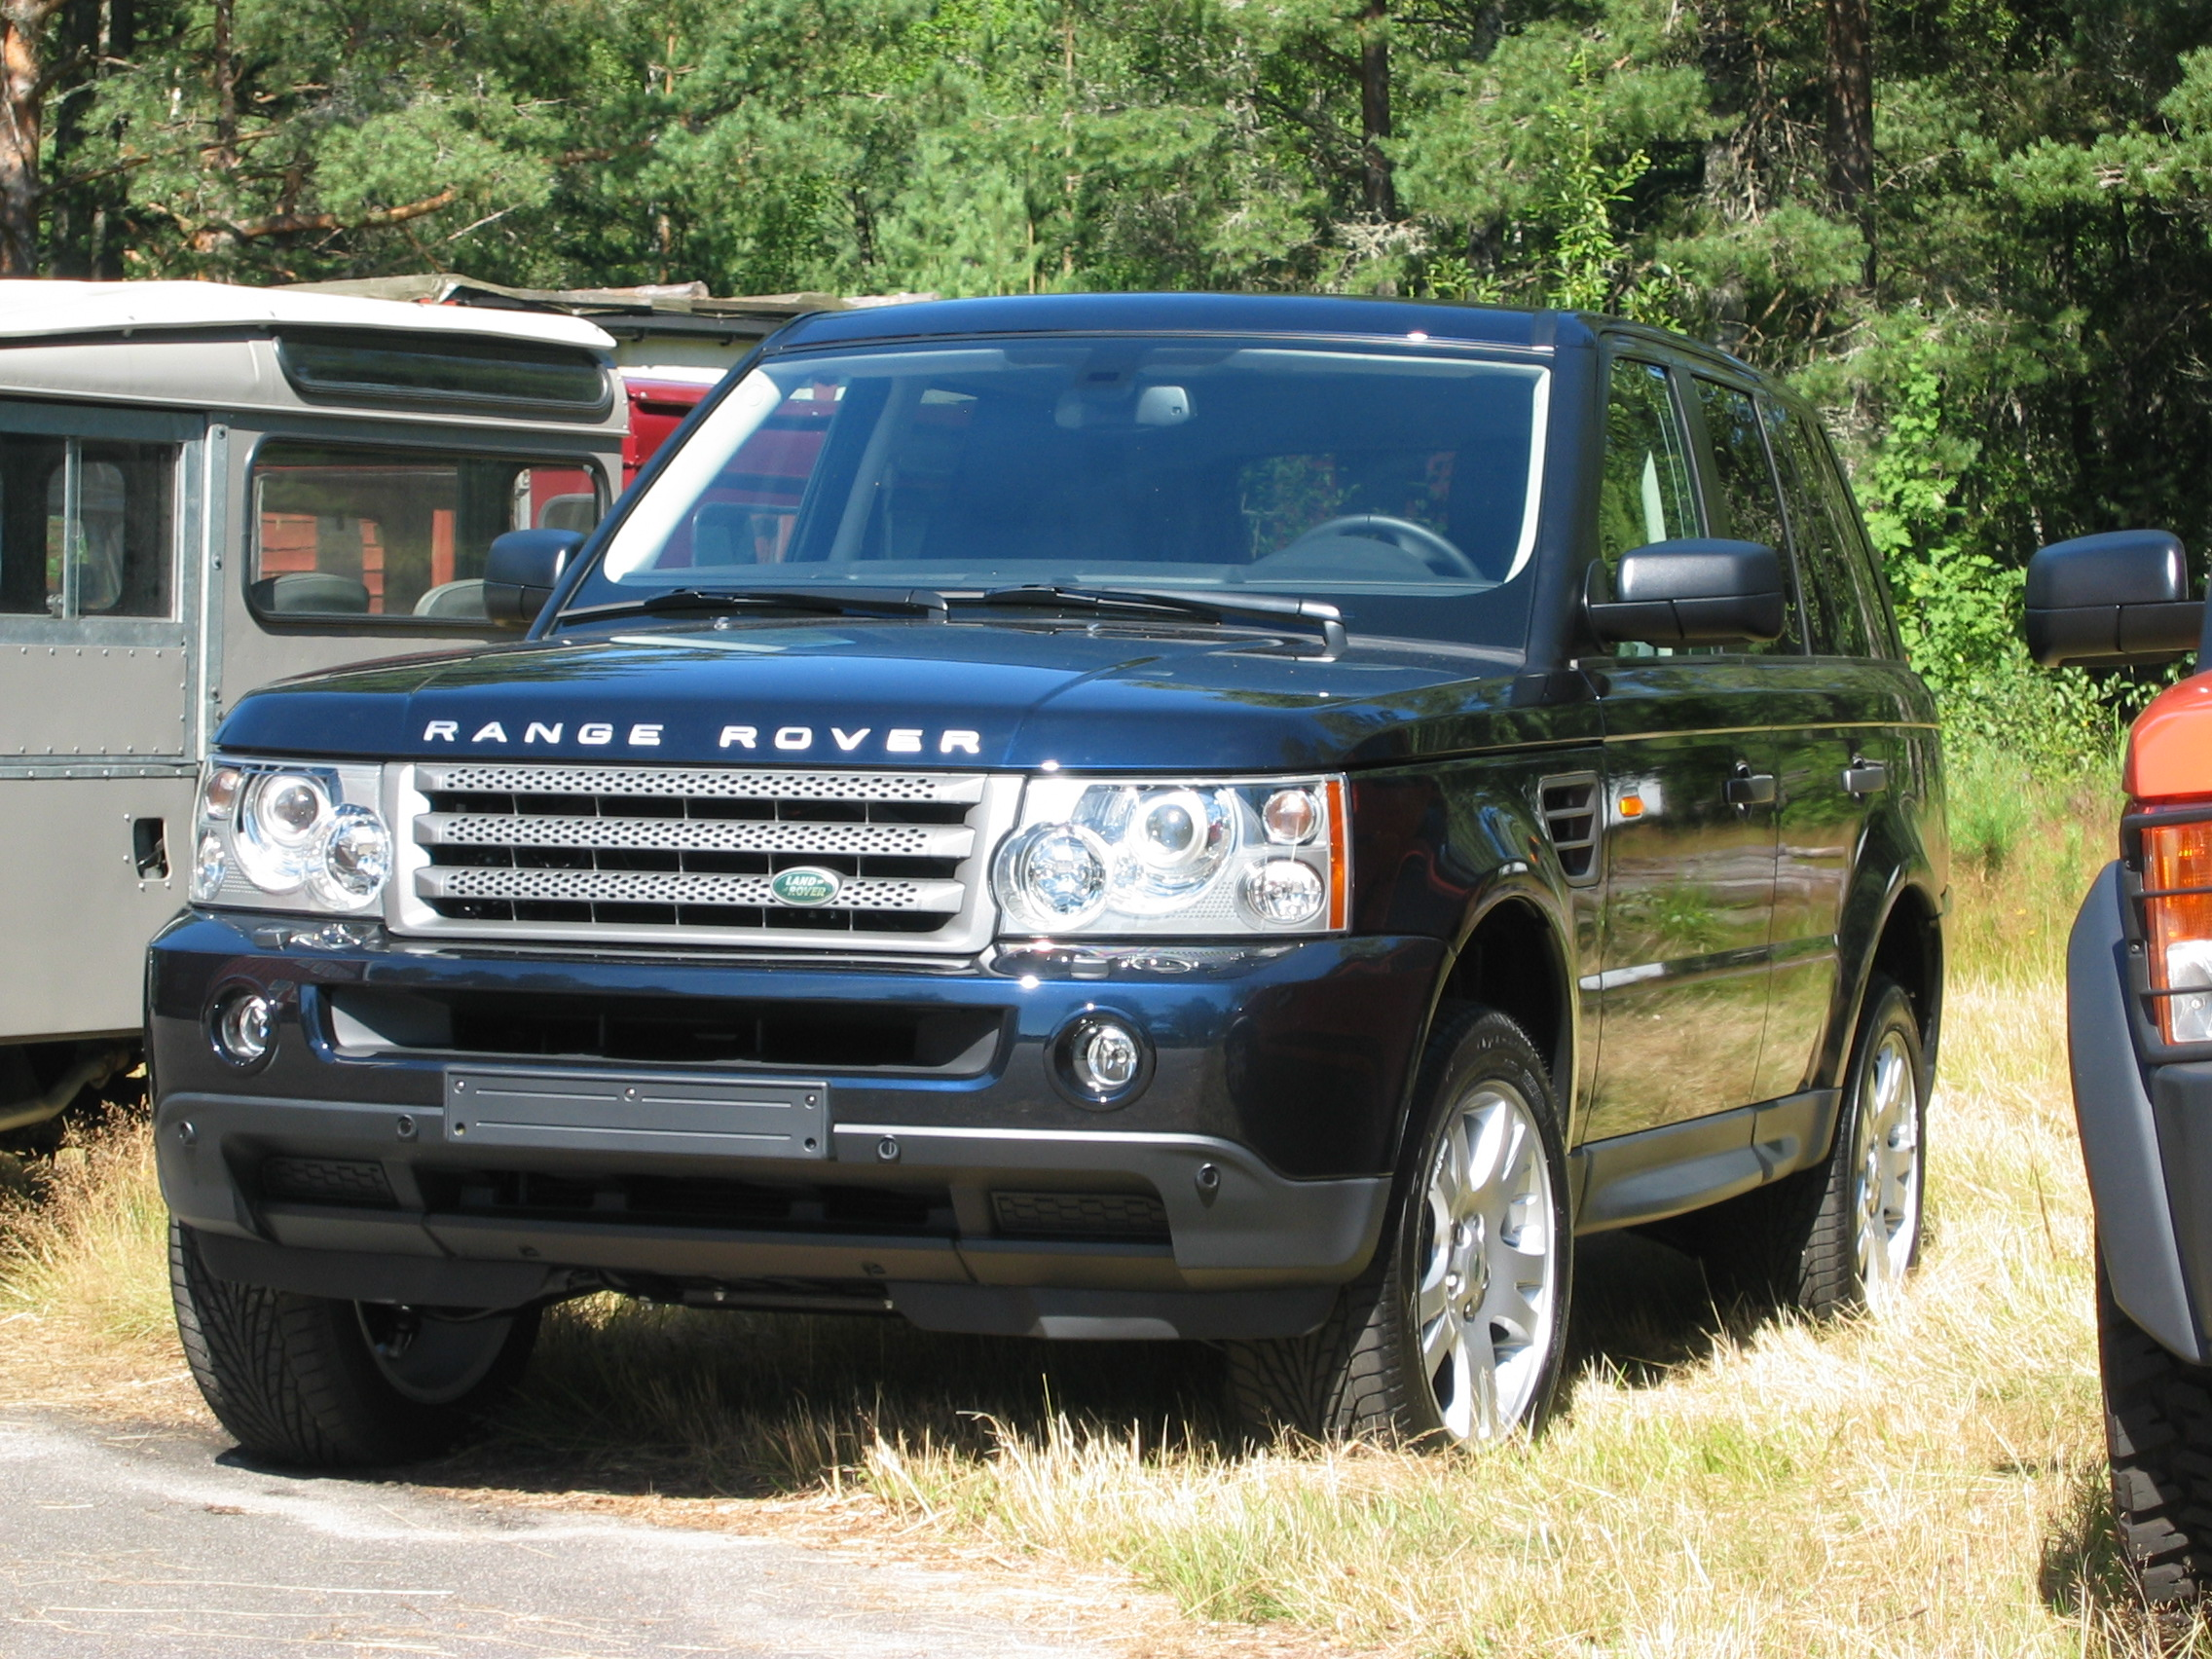 file 2005 range rover sport front wikimedia commons. Black Bedroom Furniture Sets. Home Design Ideas